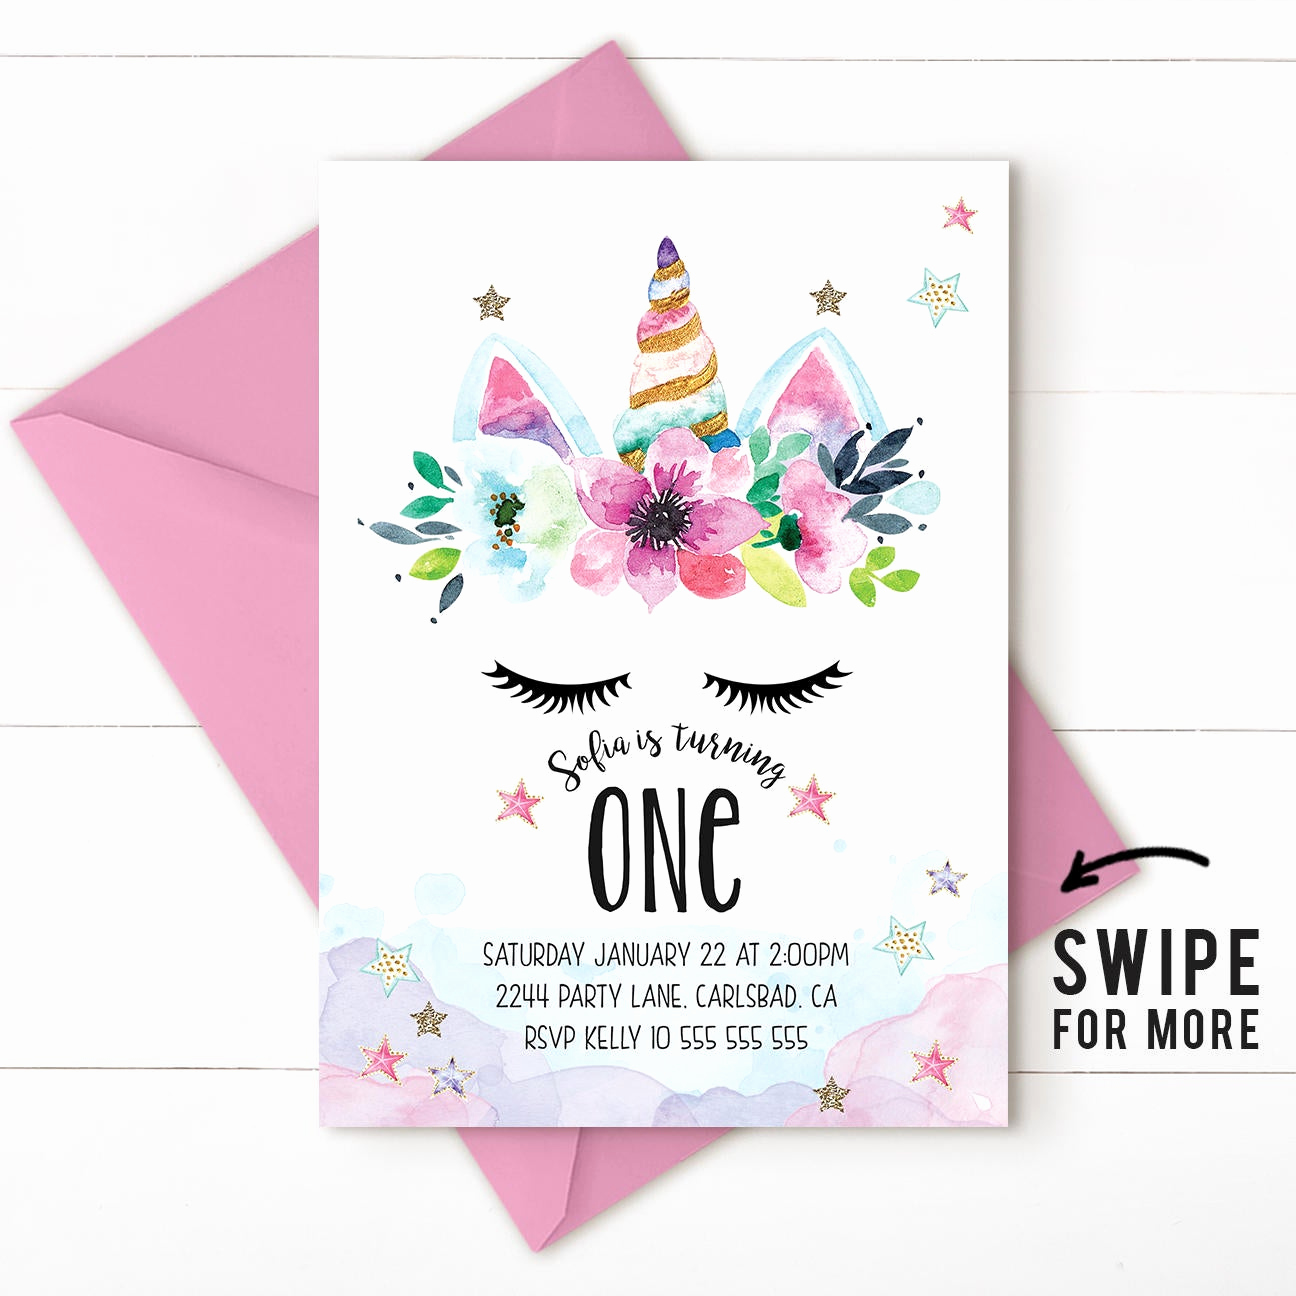 Unicorn Birthday Invitation Templates Luxury Unicorn Birthday Invitation Unicorn Invitation Magical